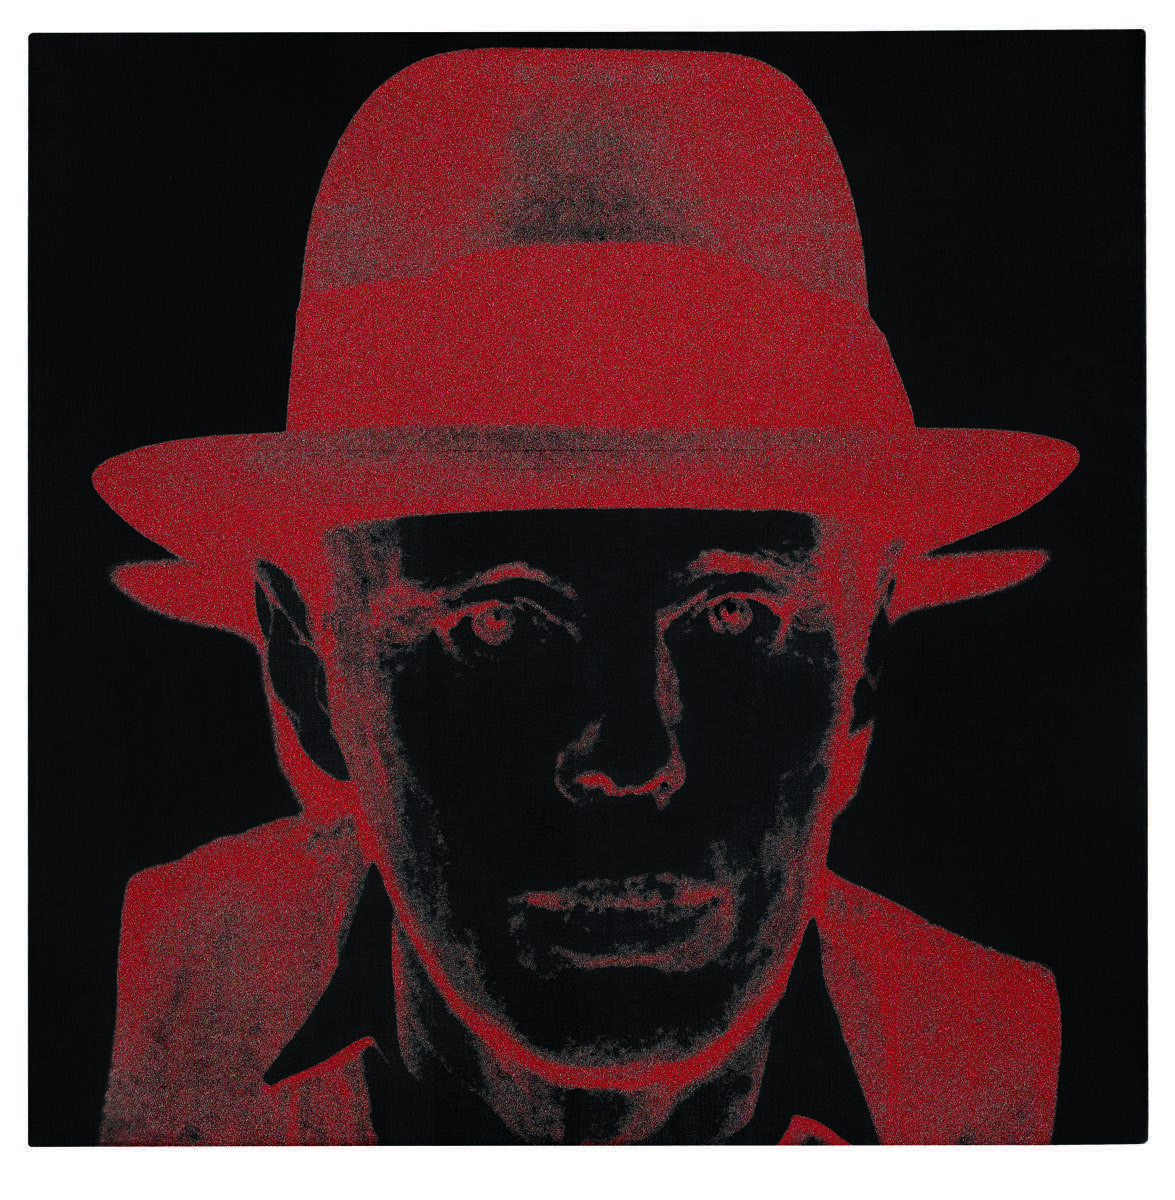 Andy Warhol, Joseph Beuys (Diamond Dust), 1980. Courtesy of Sotheby's.